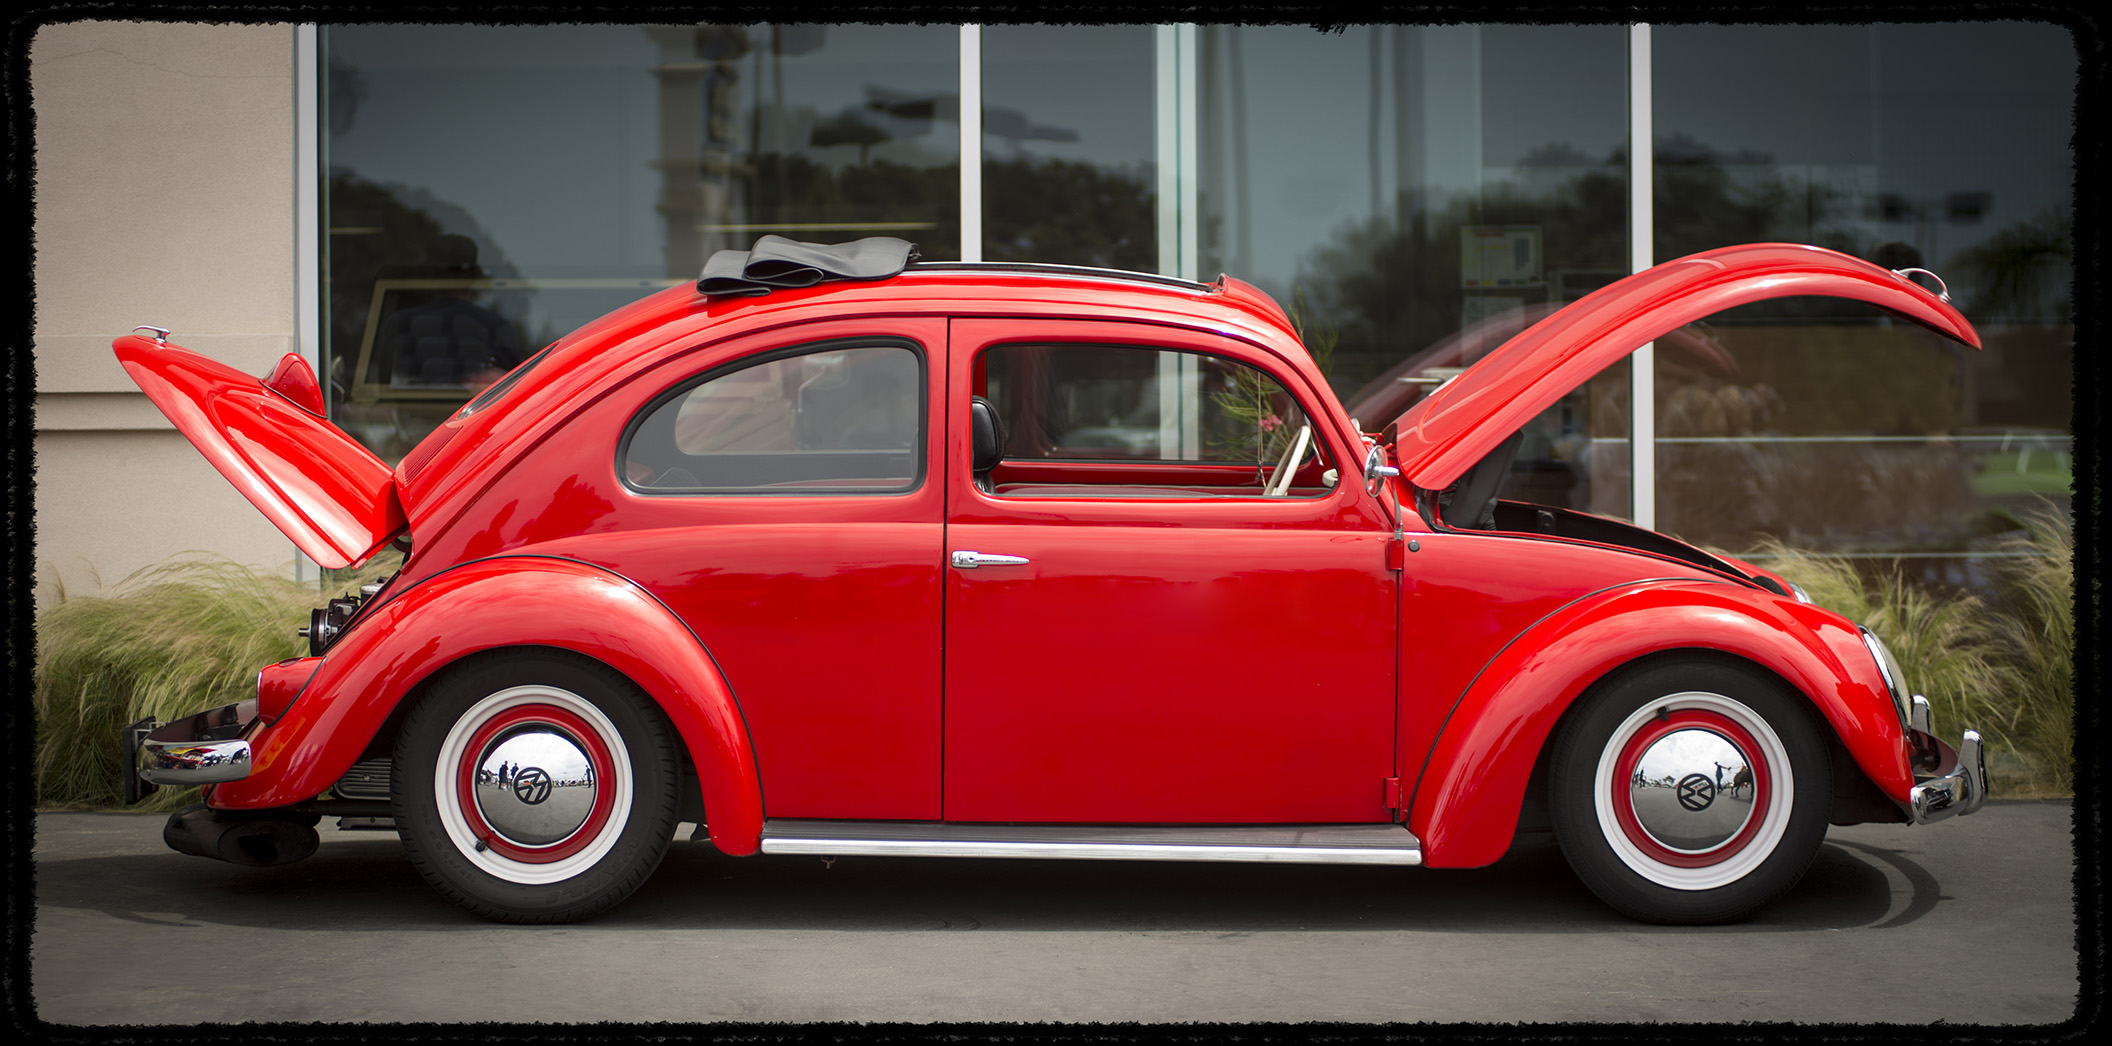 Preferred 1961 VW Beetle and other assorted Years | timm eubanks photography  MG24